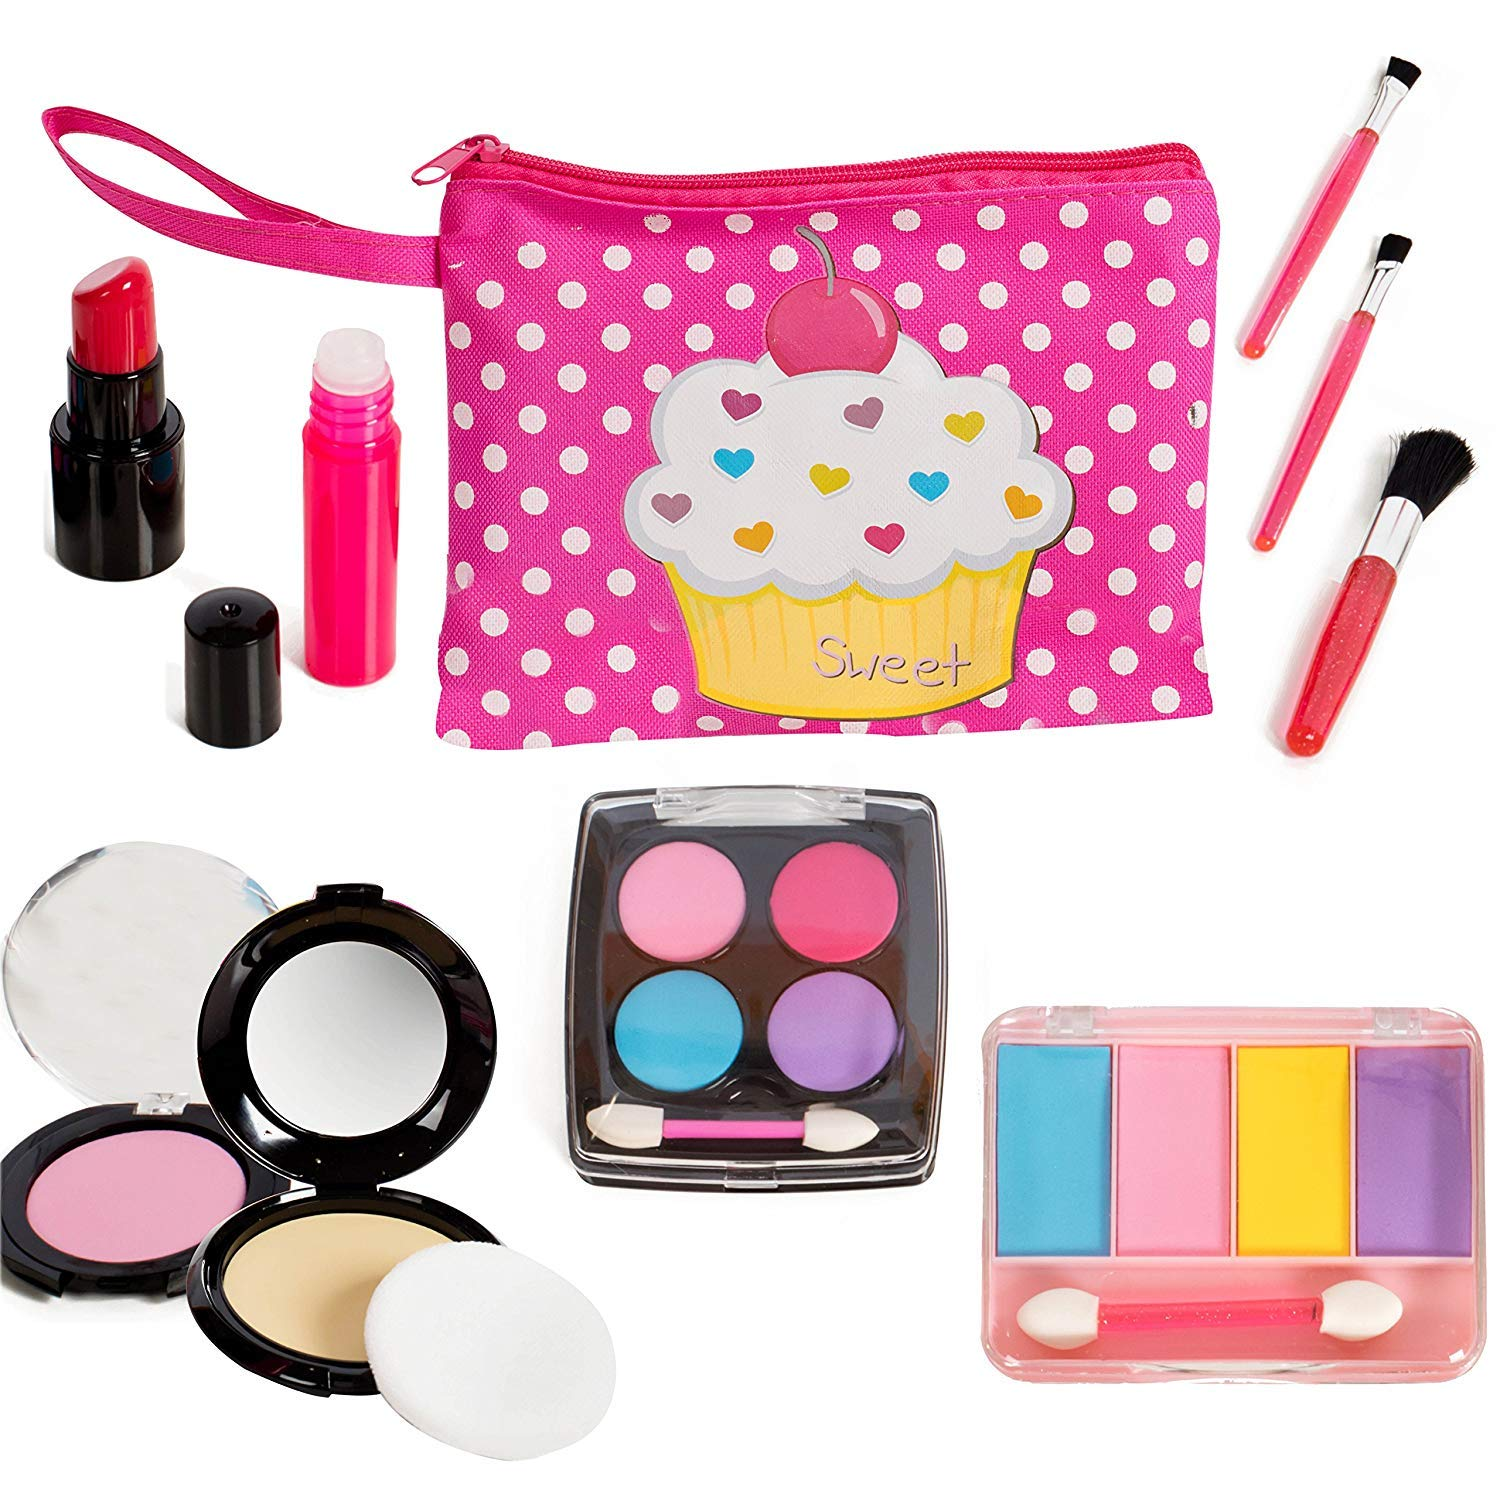 Children Lovely Beauty Plastic Makeup Comestics Kit Eye Shadow Neither Too Hard Nor Too Soft Eye Shadow